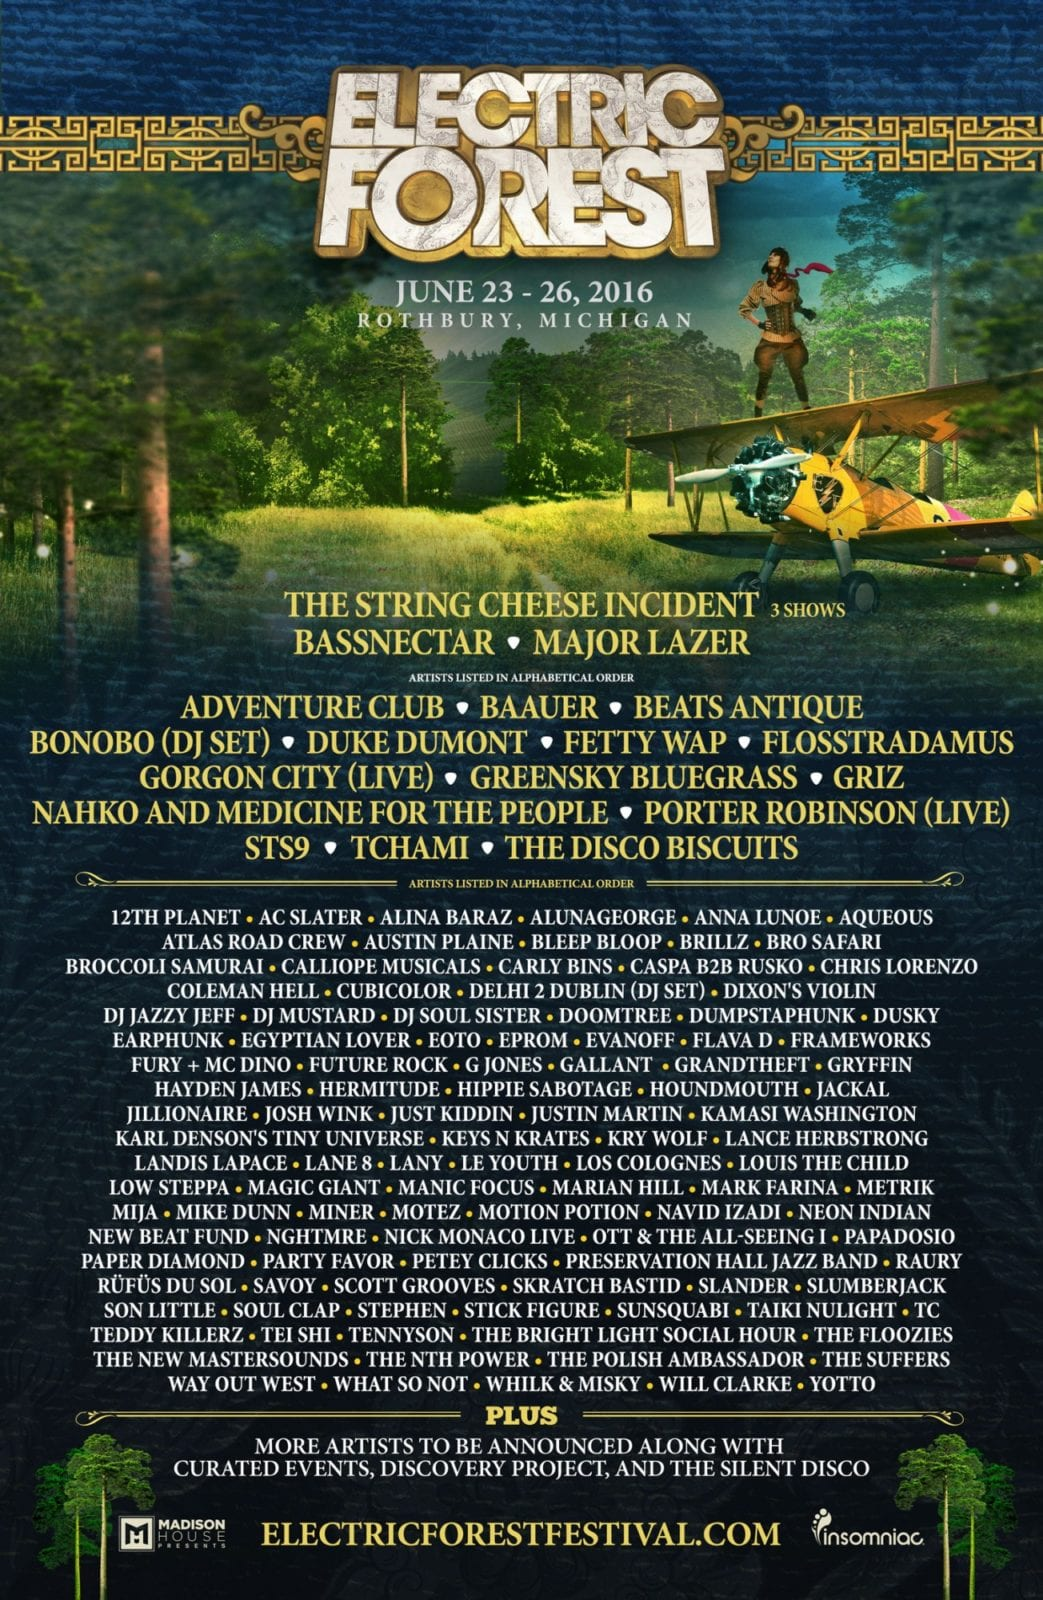 Electric Forest 2016 Festival Poster